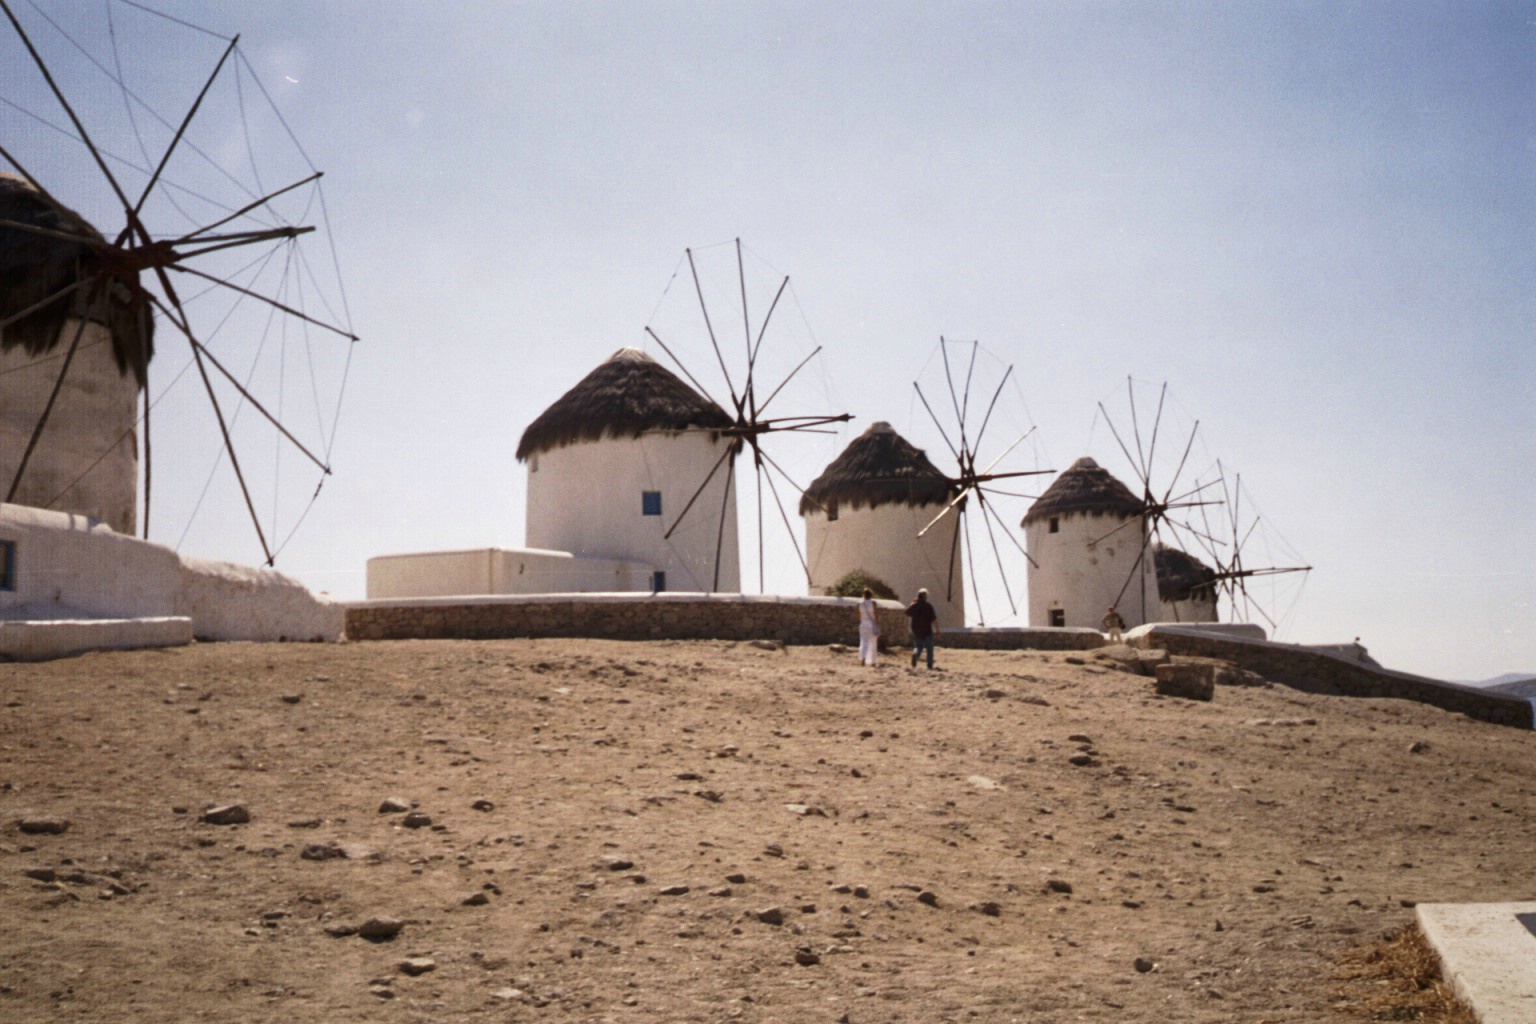 128Mykonos Windmills 2 ... going on inside my head. And, I kind of like it that way.